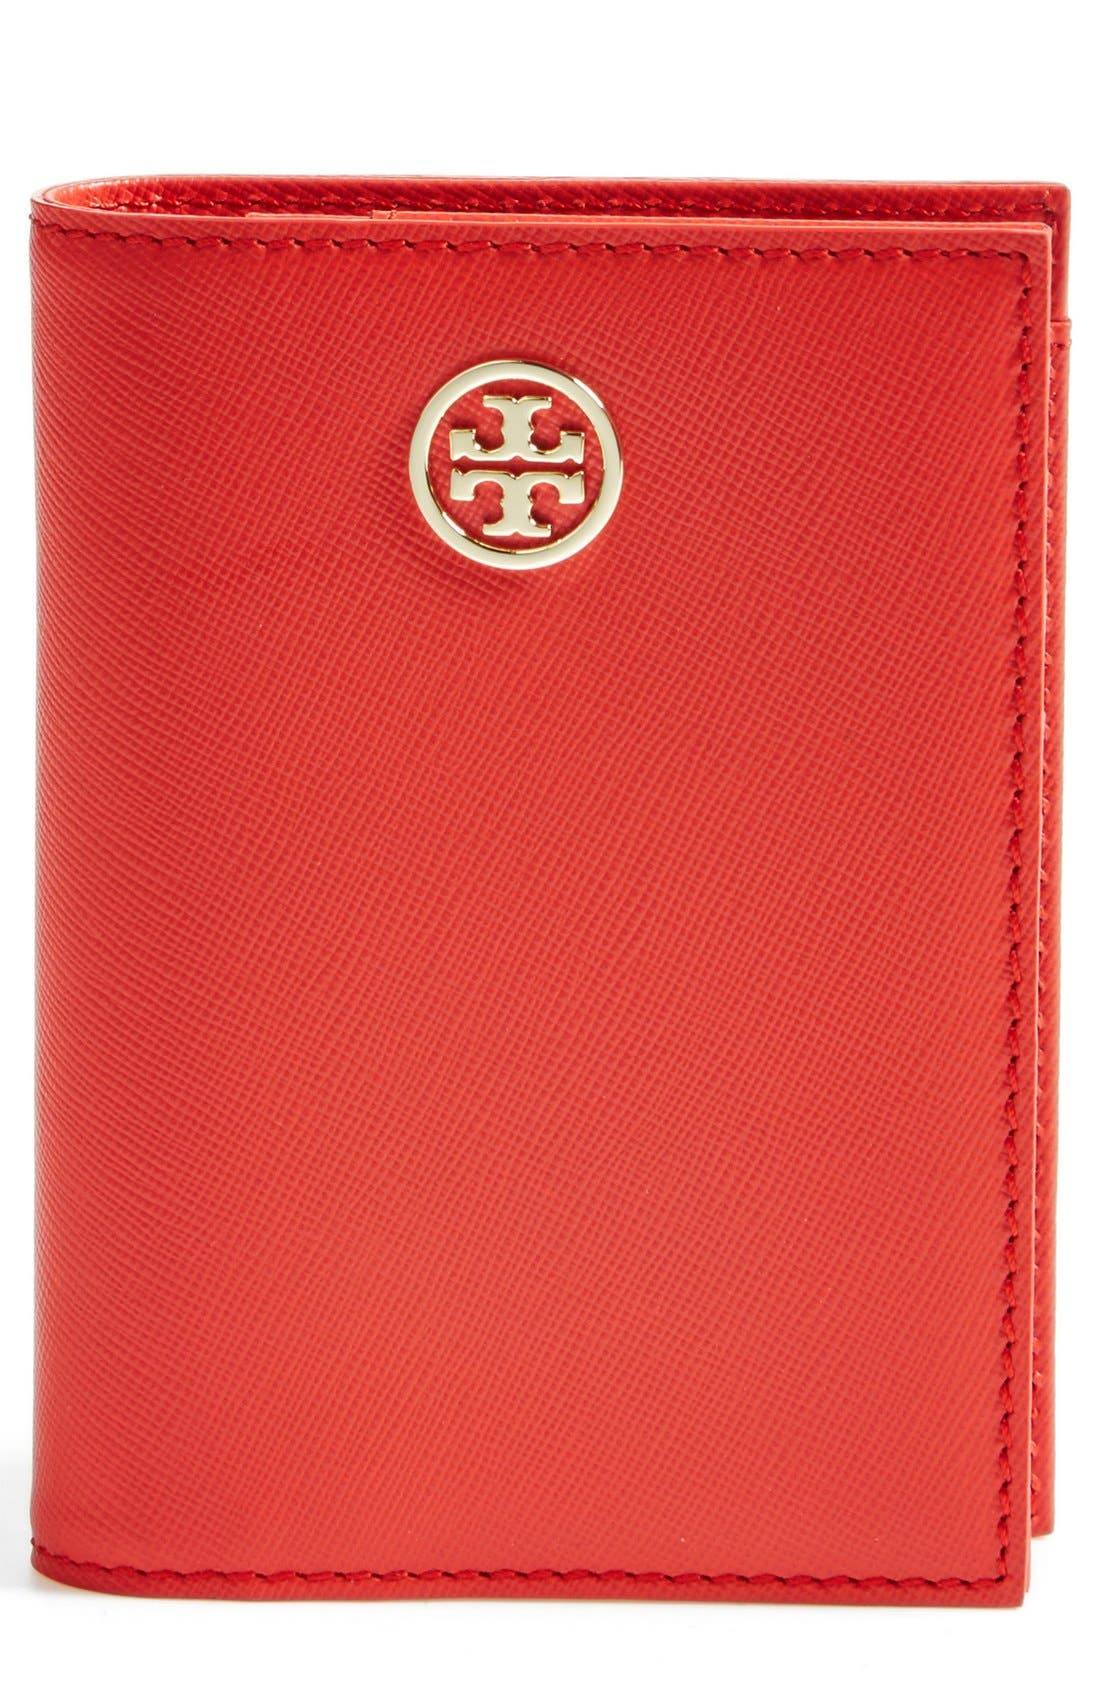 Alternate Image 1 Selected - Tory Burch 'Robinson' Passport Case